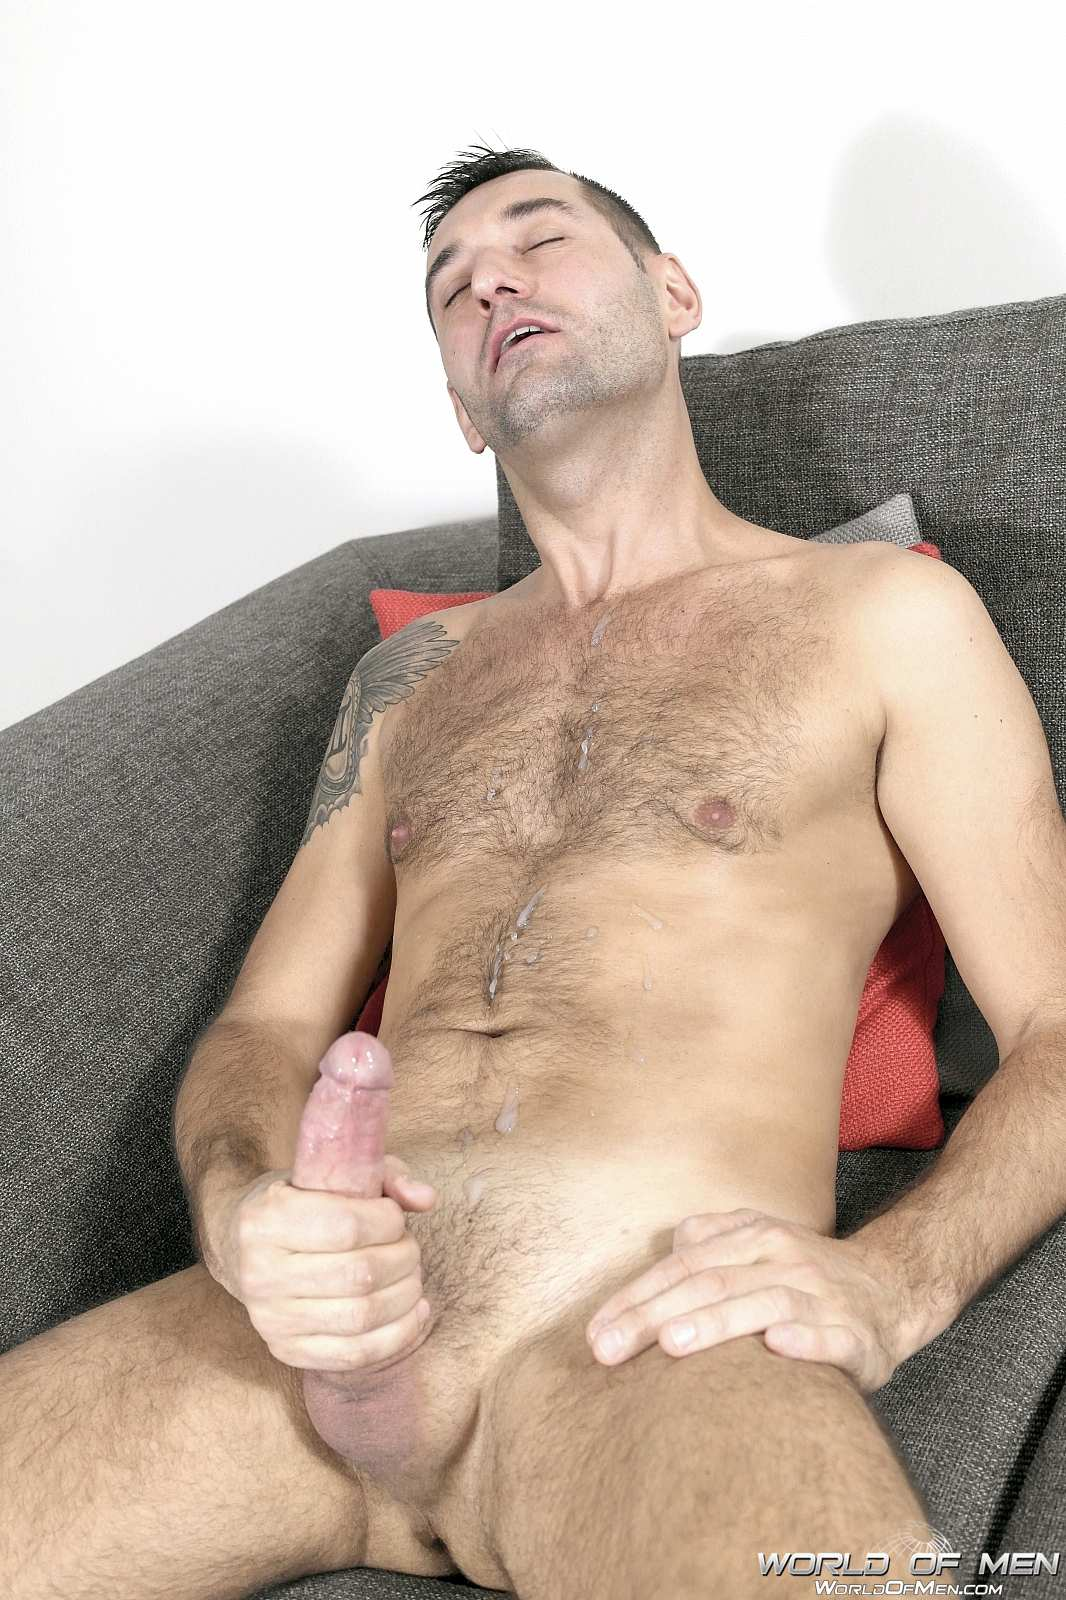 World-Of-Men-Chris-ADam-Big-Uncut-Cock-Jerk-Off-Masturbation-Amateur-Gay-Porn-06 Hairy Sexy Stud Fingers His Ass And Plays With His Huge Uncut Cock